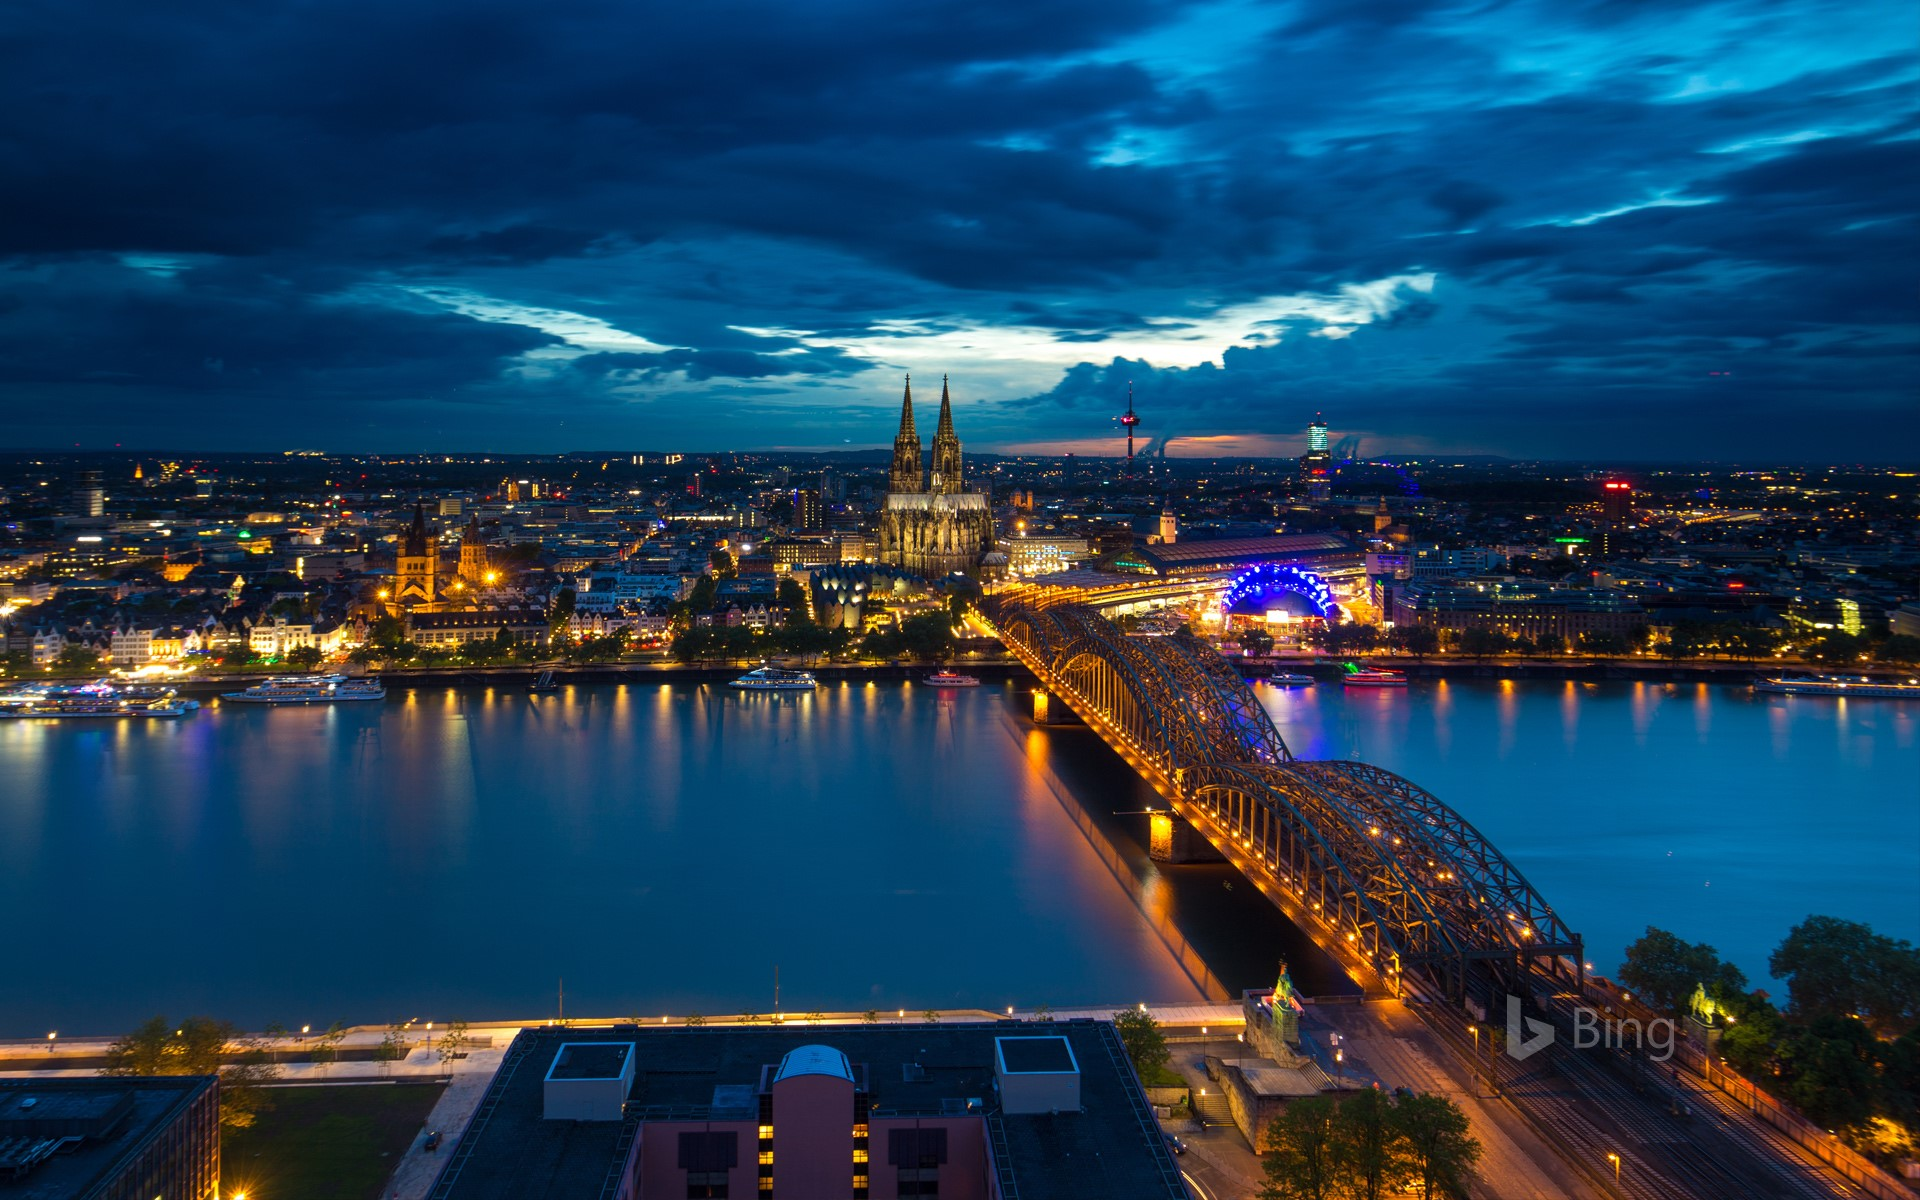 Nocturnal view of the city of Cologne, North Rhine-Westphalia